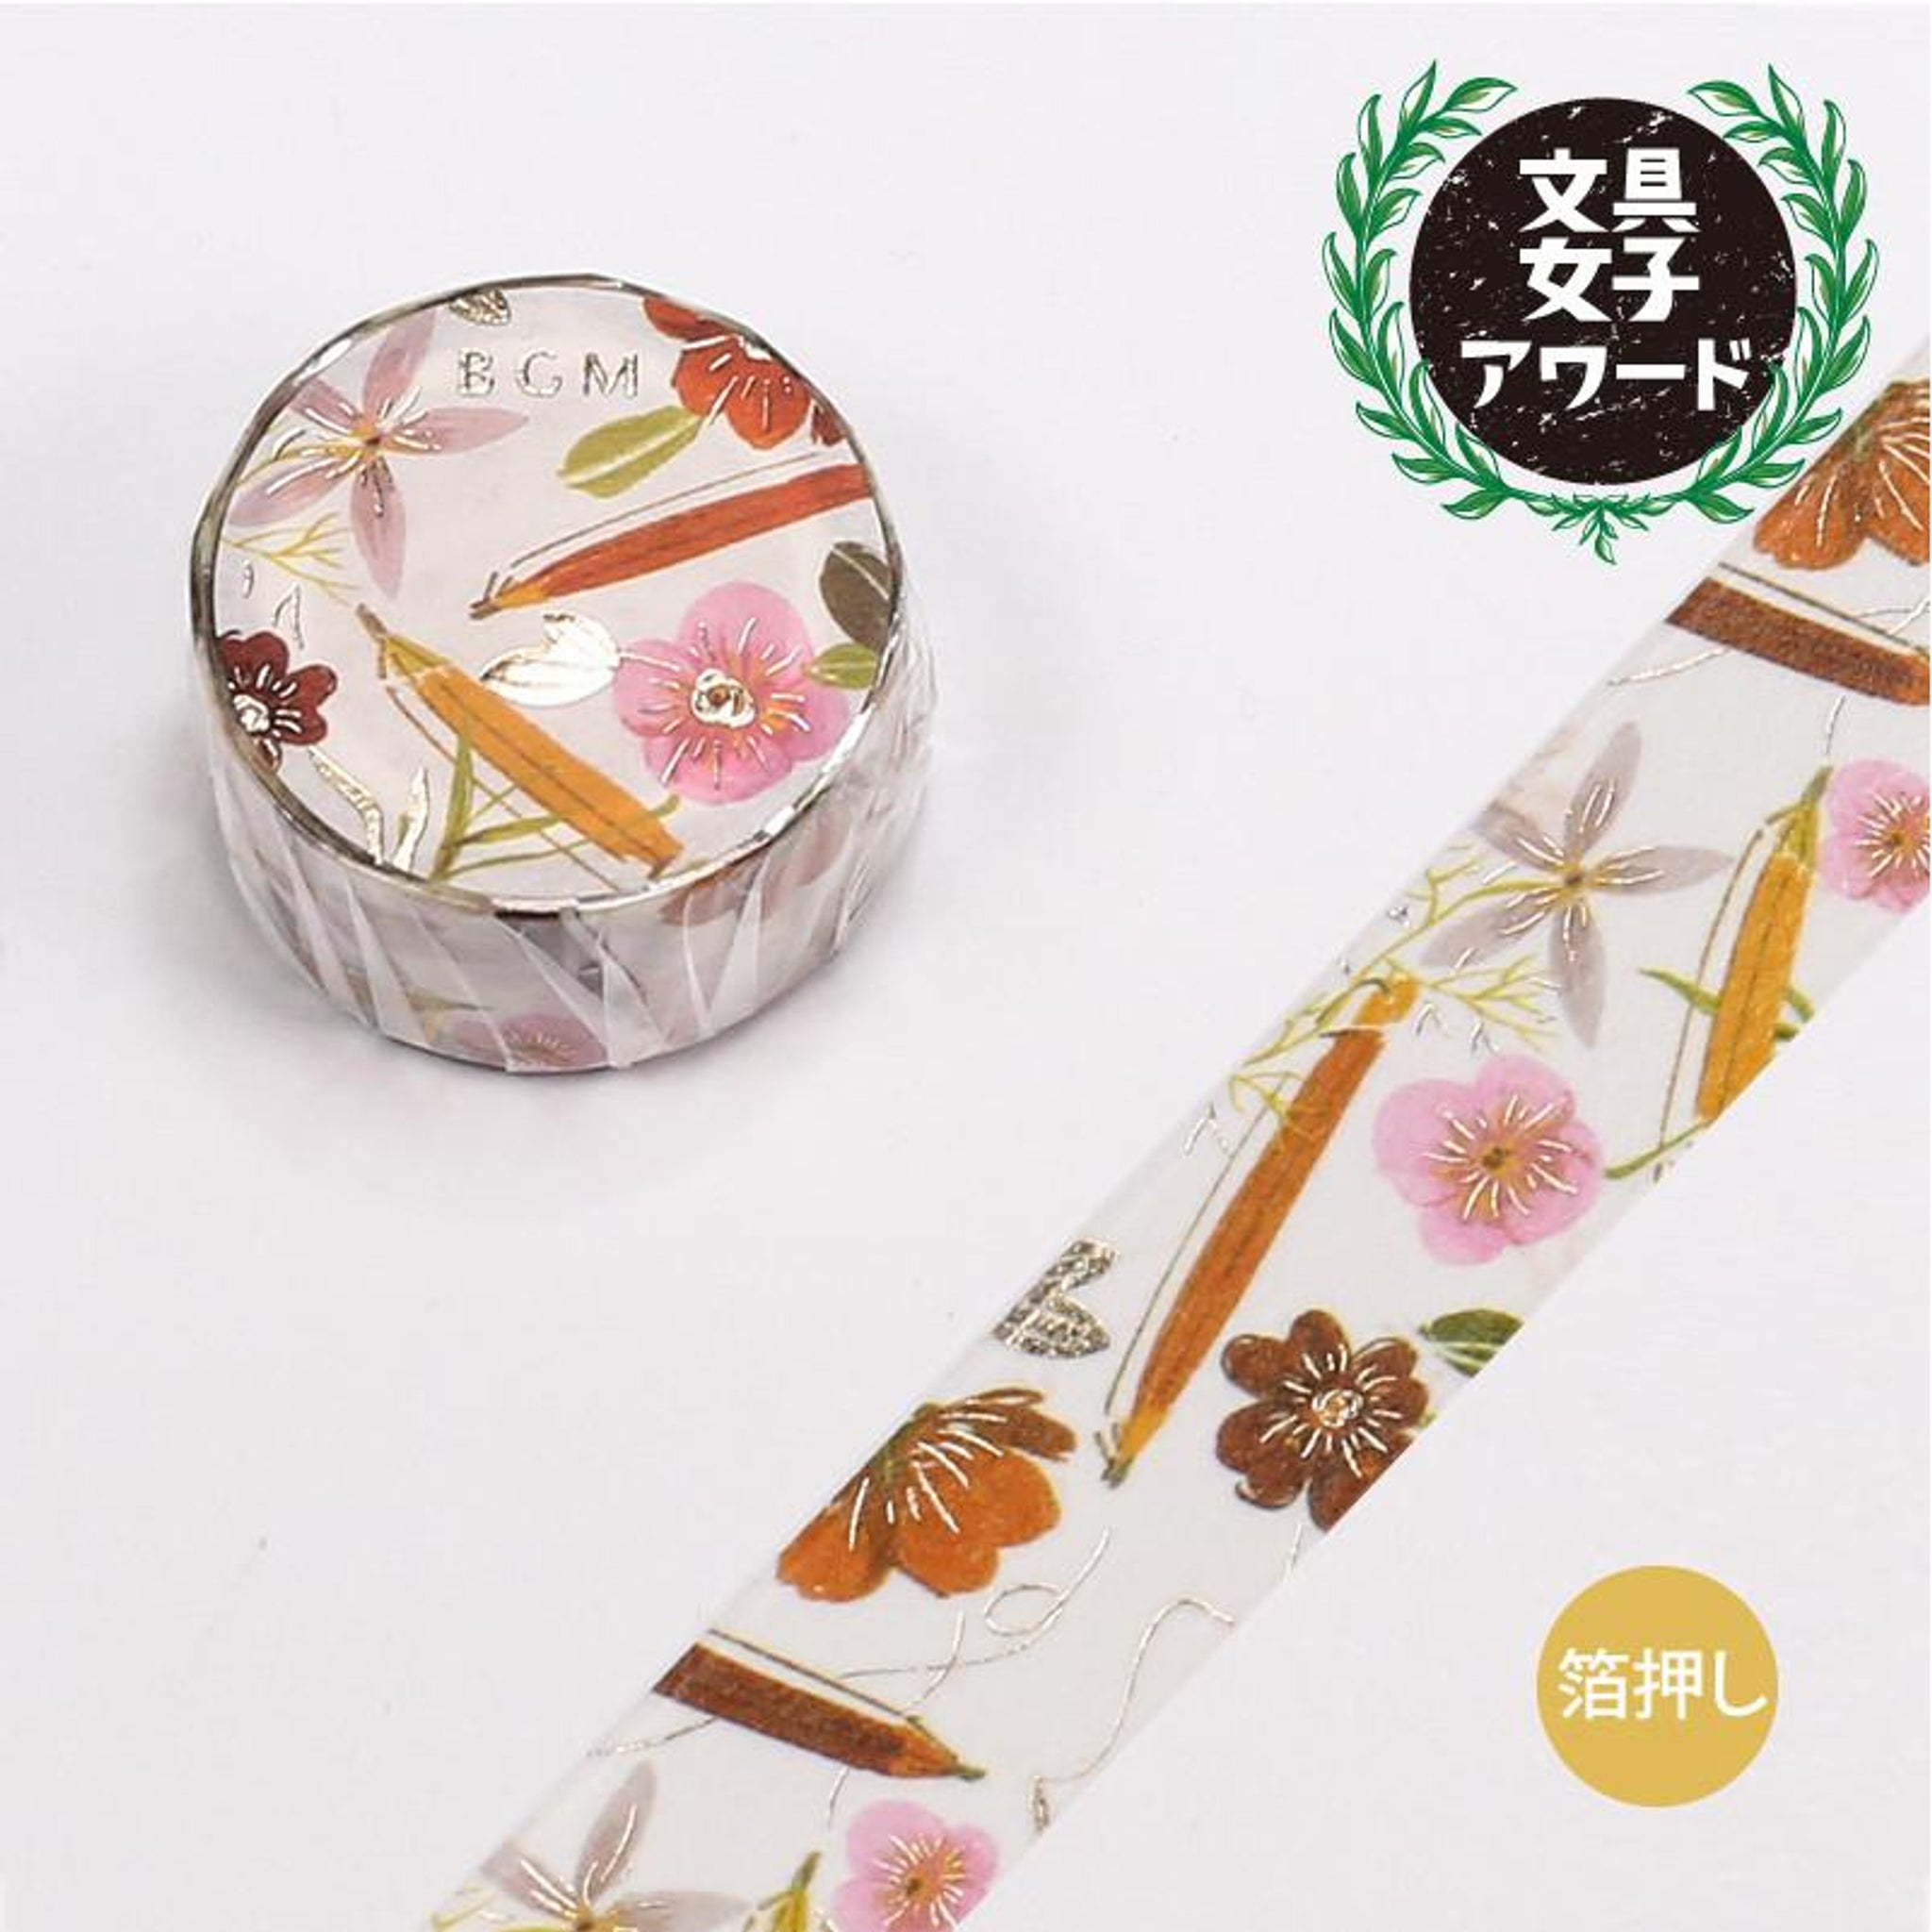 BGM Pencil Washi Tape